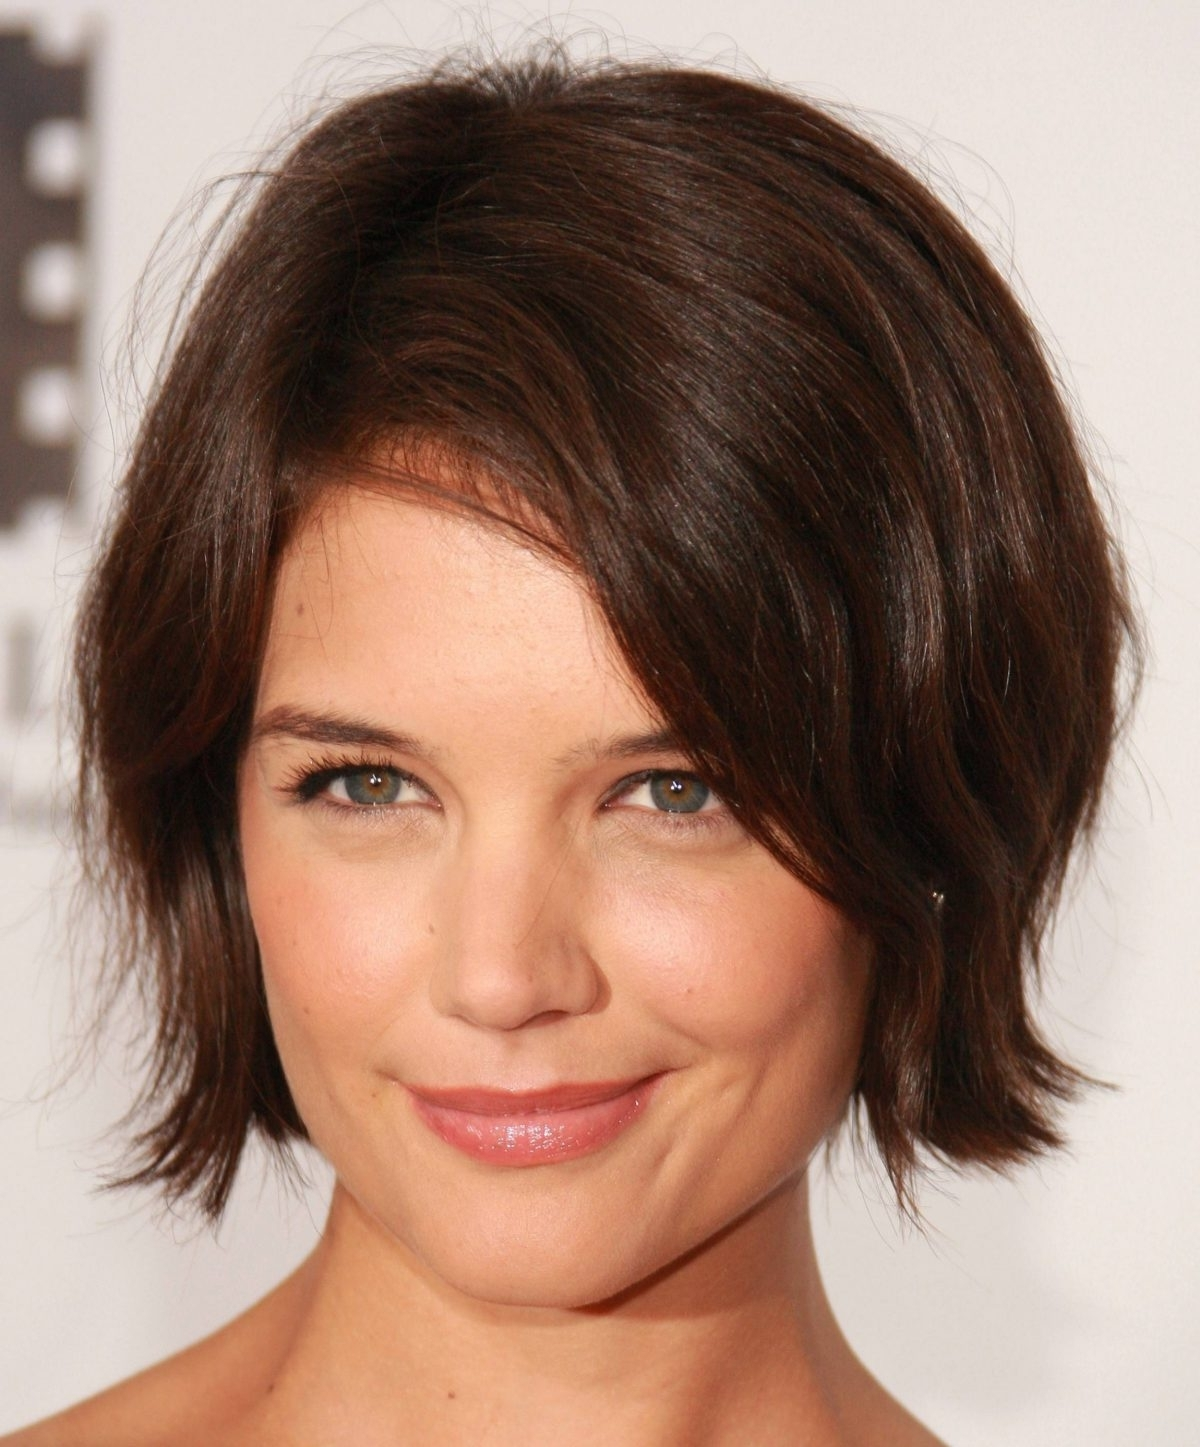 Best Short Hairstyles – Cute Hair Cut Guide For Round Face Shape Inside Widely Used Asymmetrical Long Pixie Hairstyles For Round Faces (View 7 of 20)